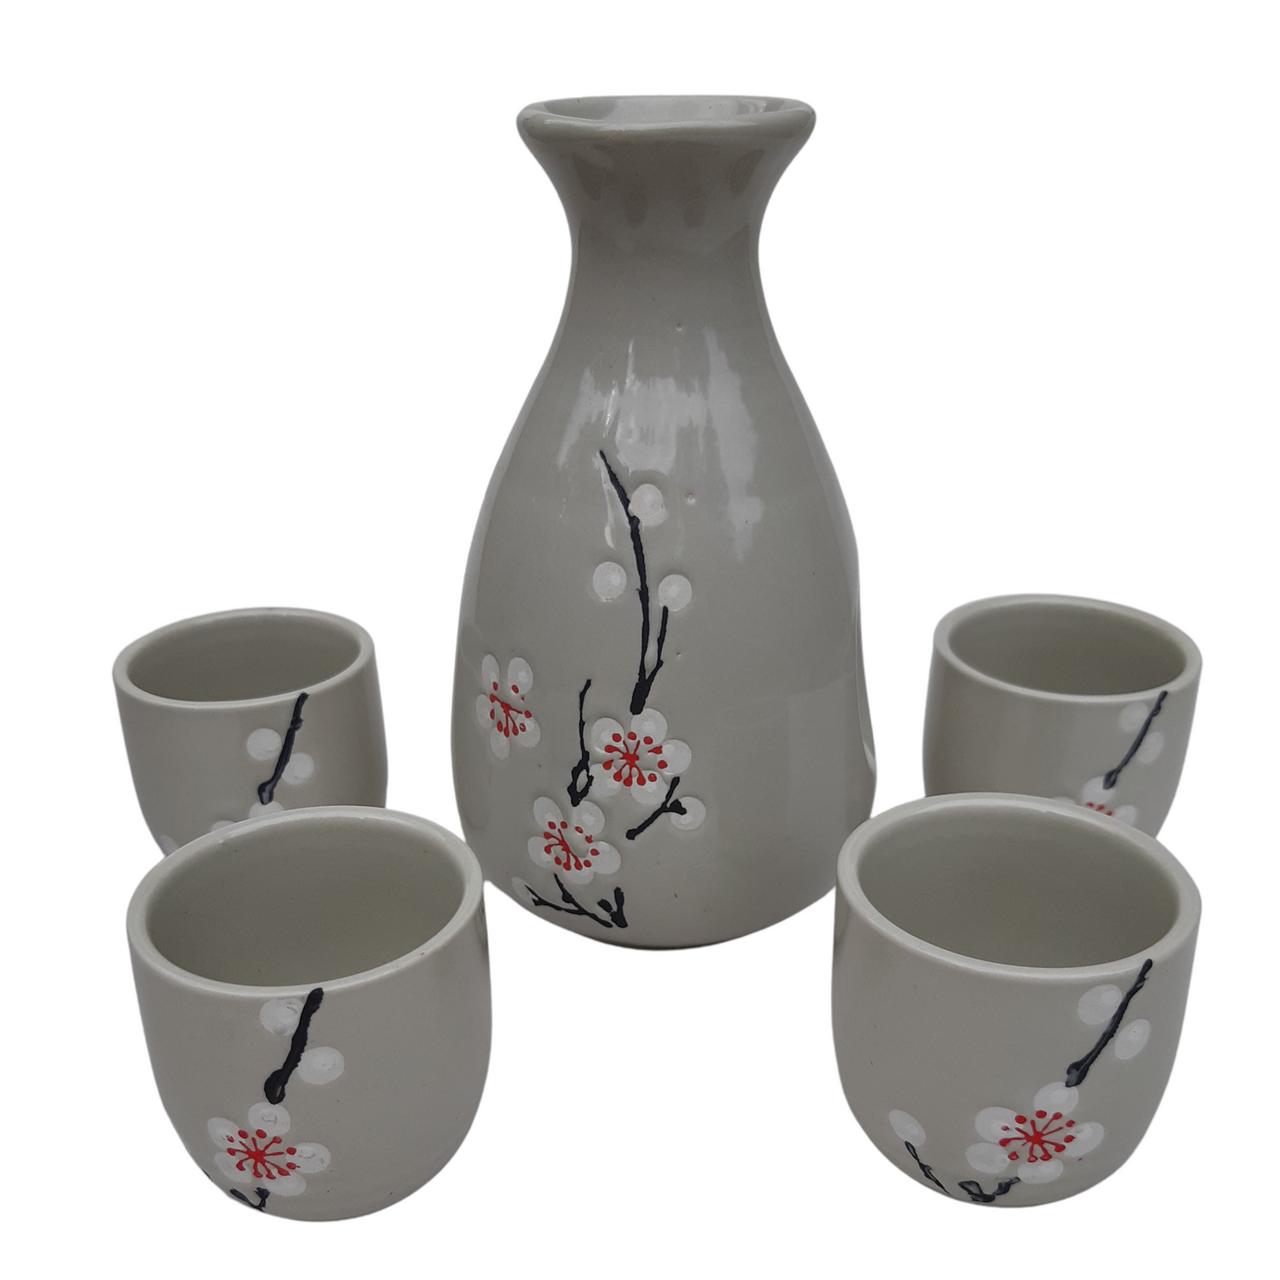 Sake Set with Grey Blossom Sprig Pattern - Ceramic Flask and Cups - Boxed